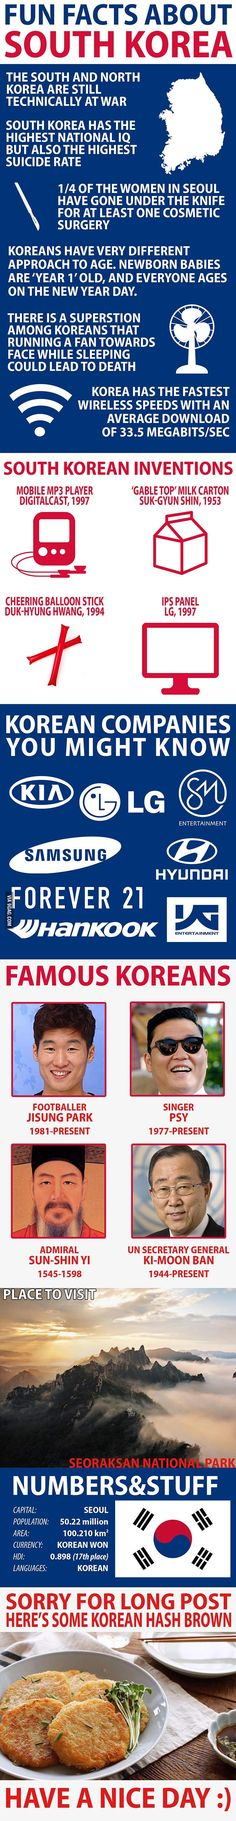 Fun Facts about South Korea - 9GAG